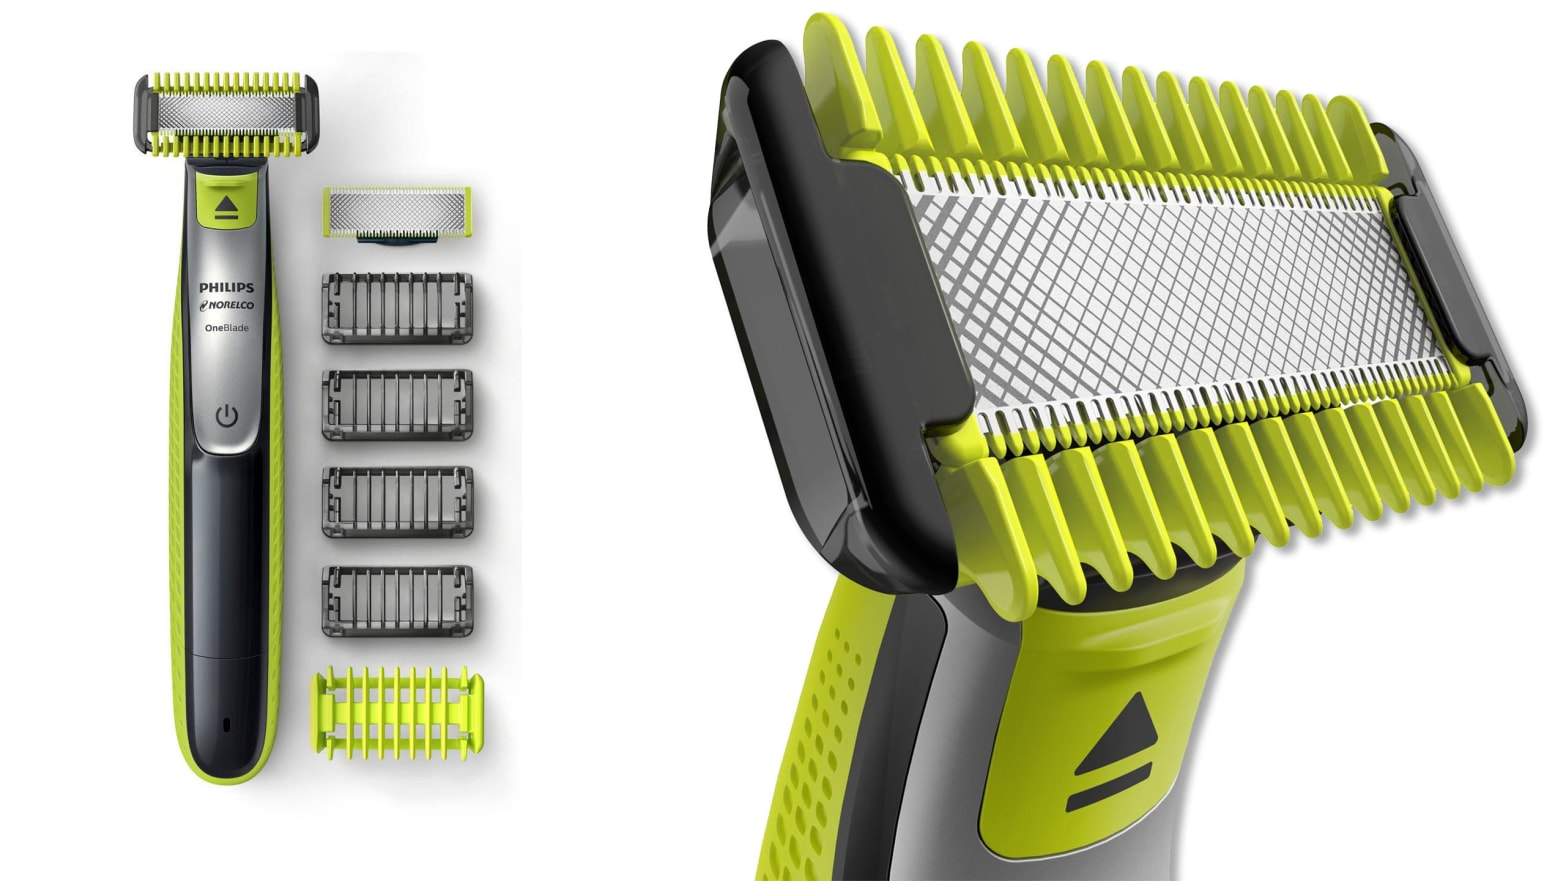 The Philips Norelco OneBlade Is the Best All-Around Grooming Trimmer Out There